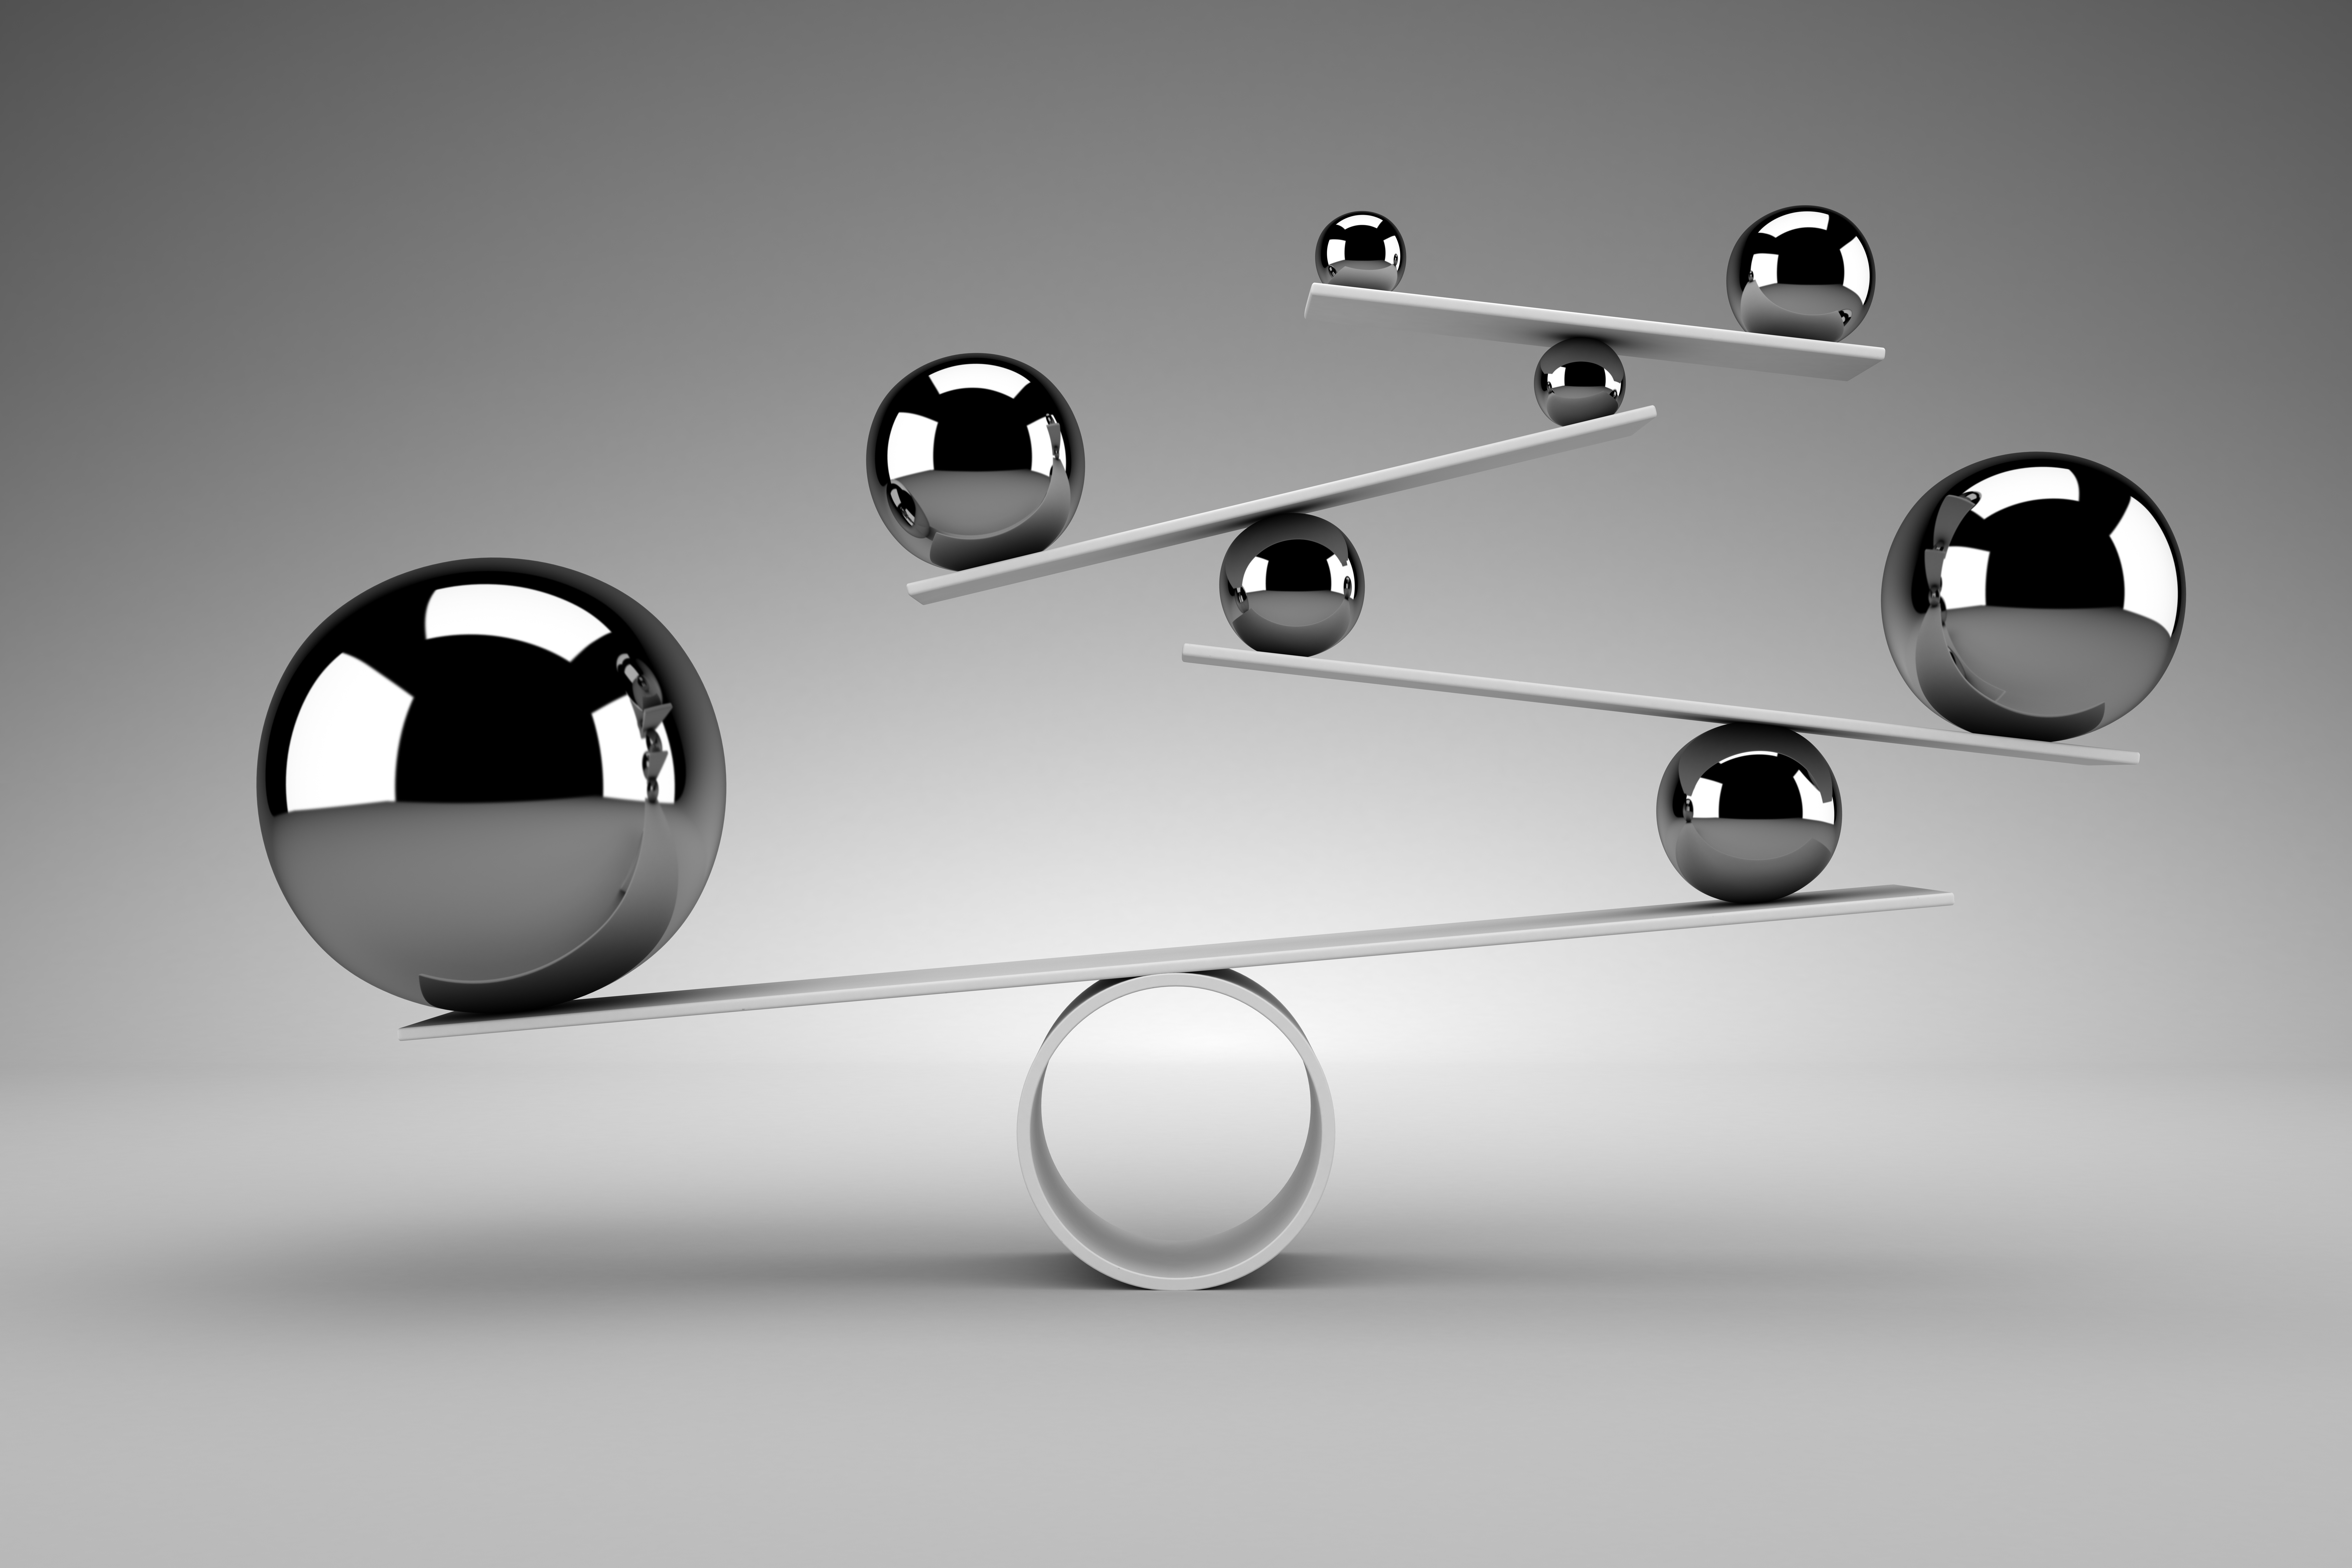 marbles on levers representing balance between accuracy and simplicity